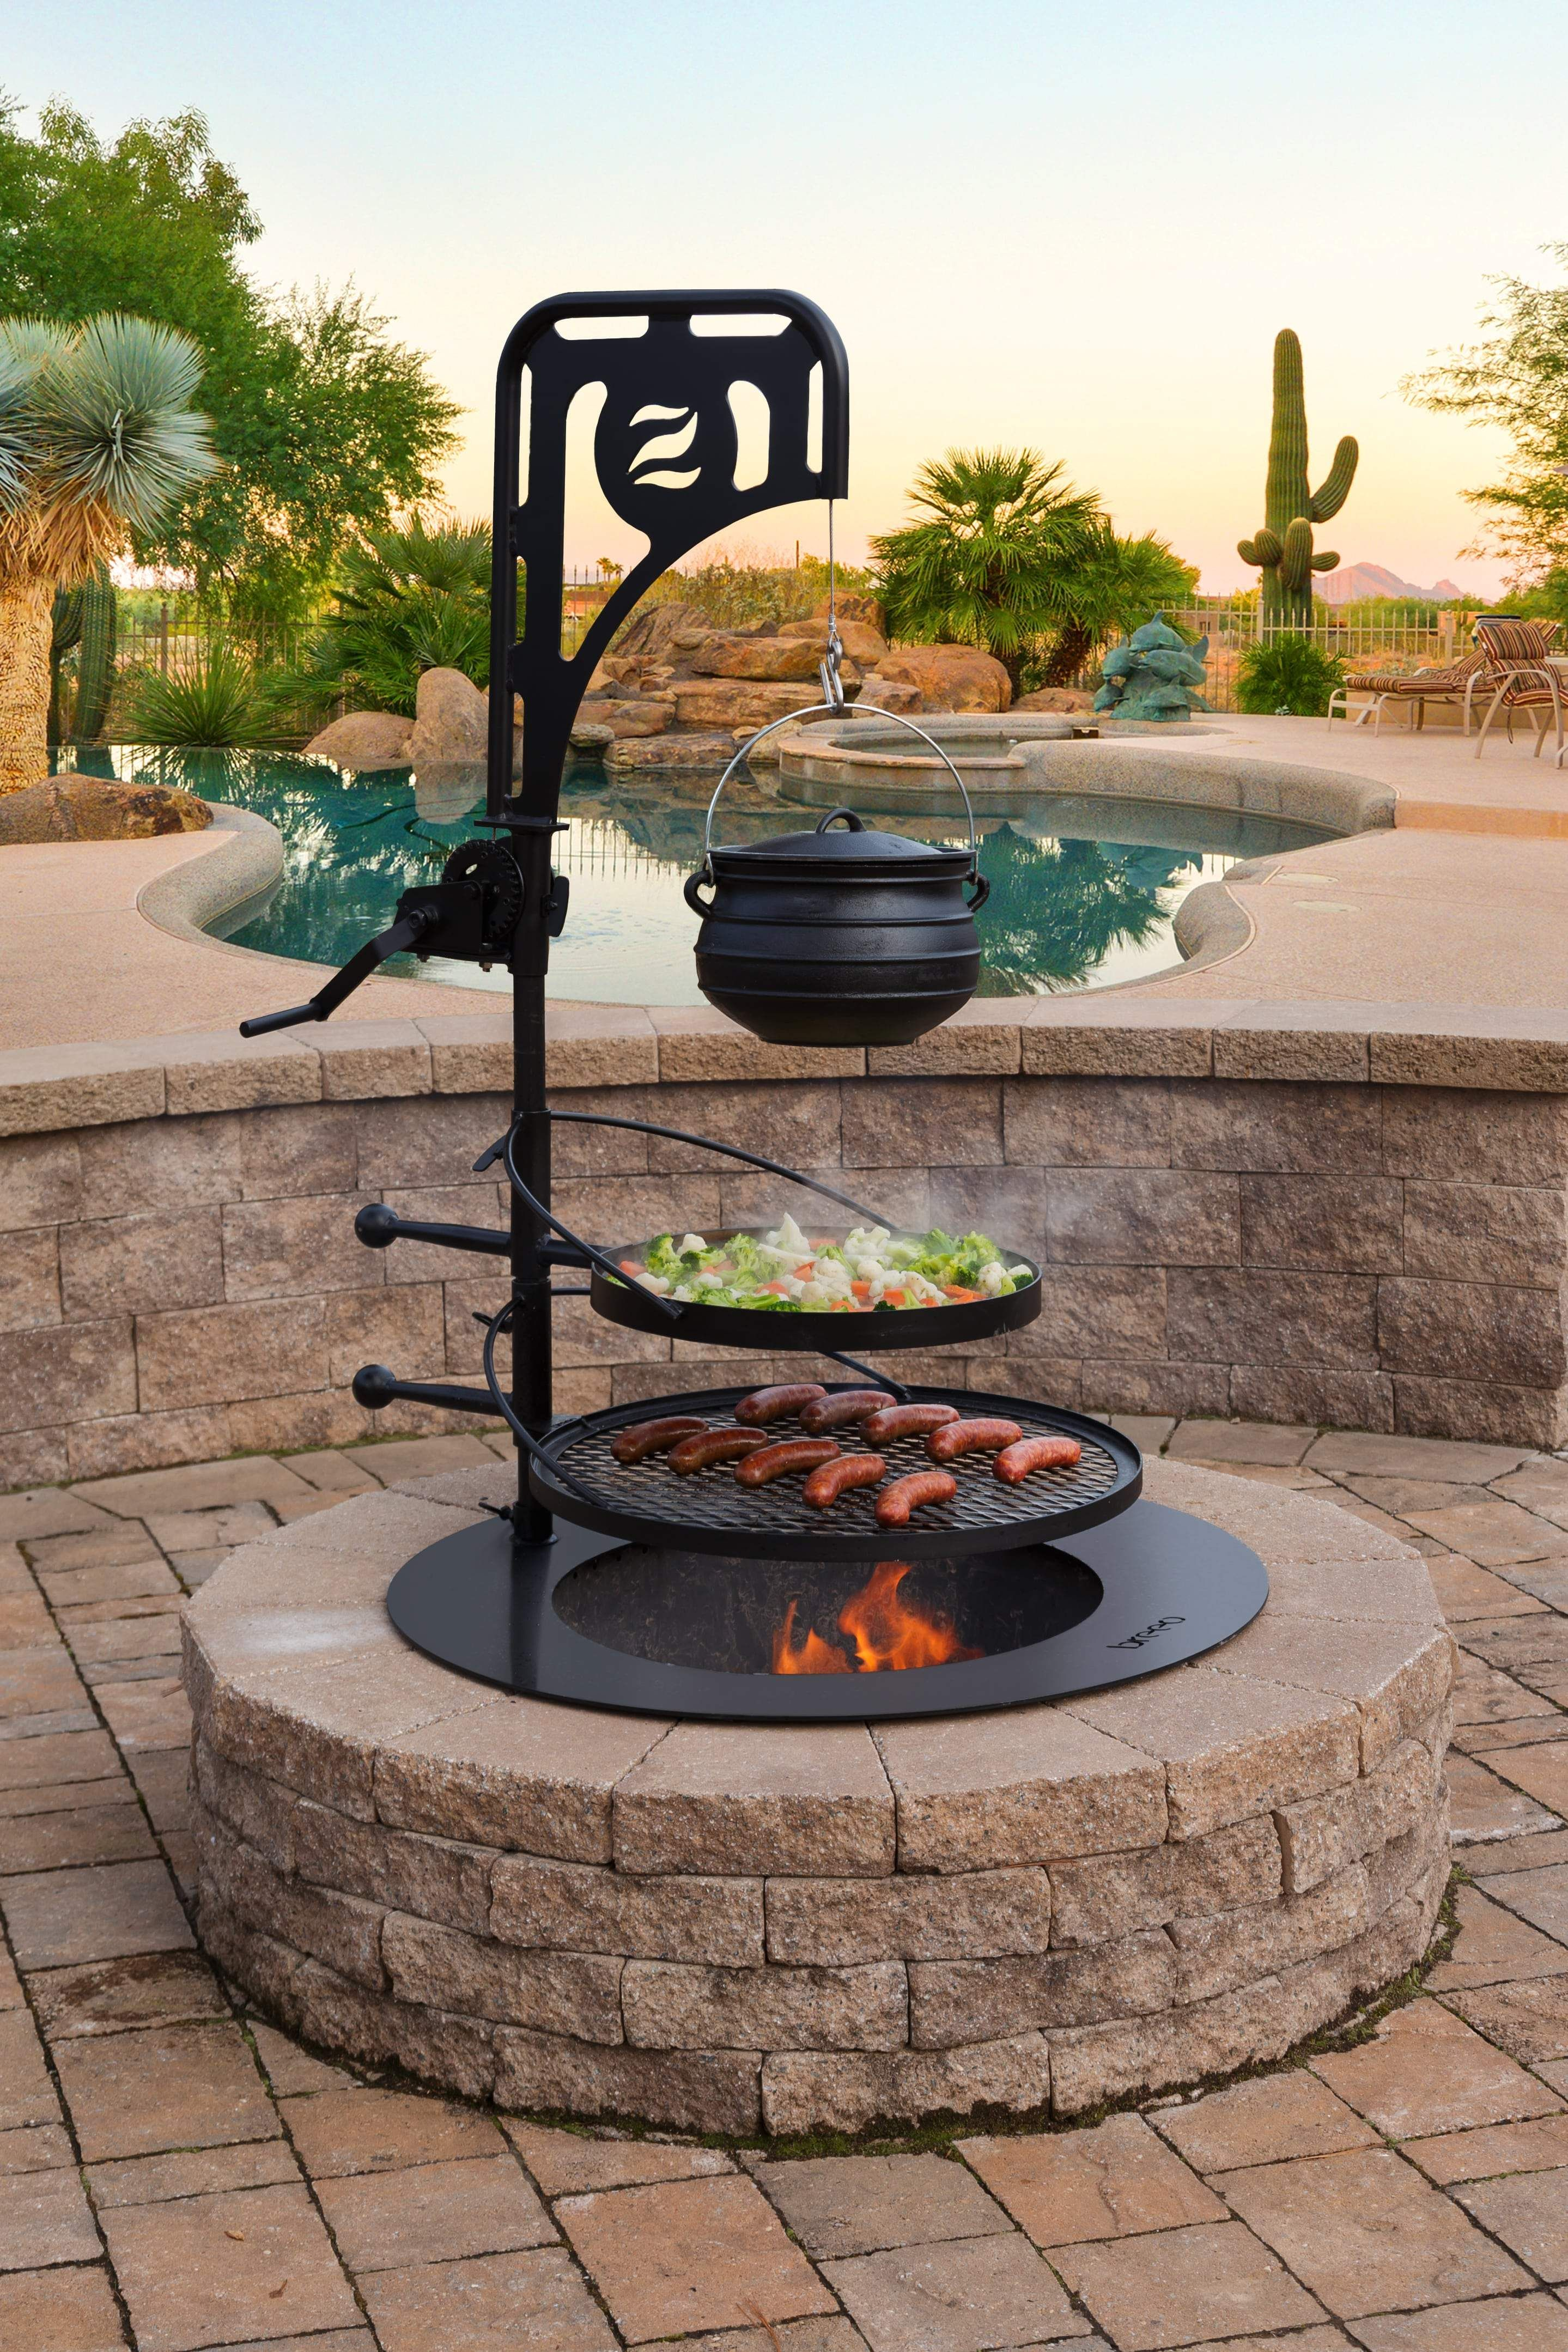 Diy Natural Gas Fire Pit Table Google Search Gas Fire Pit Table Gas Firepit Natural Gas Fire Pit